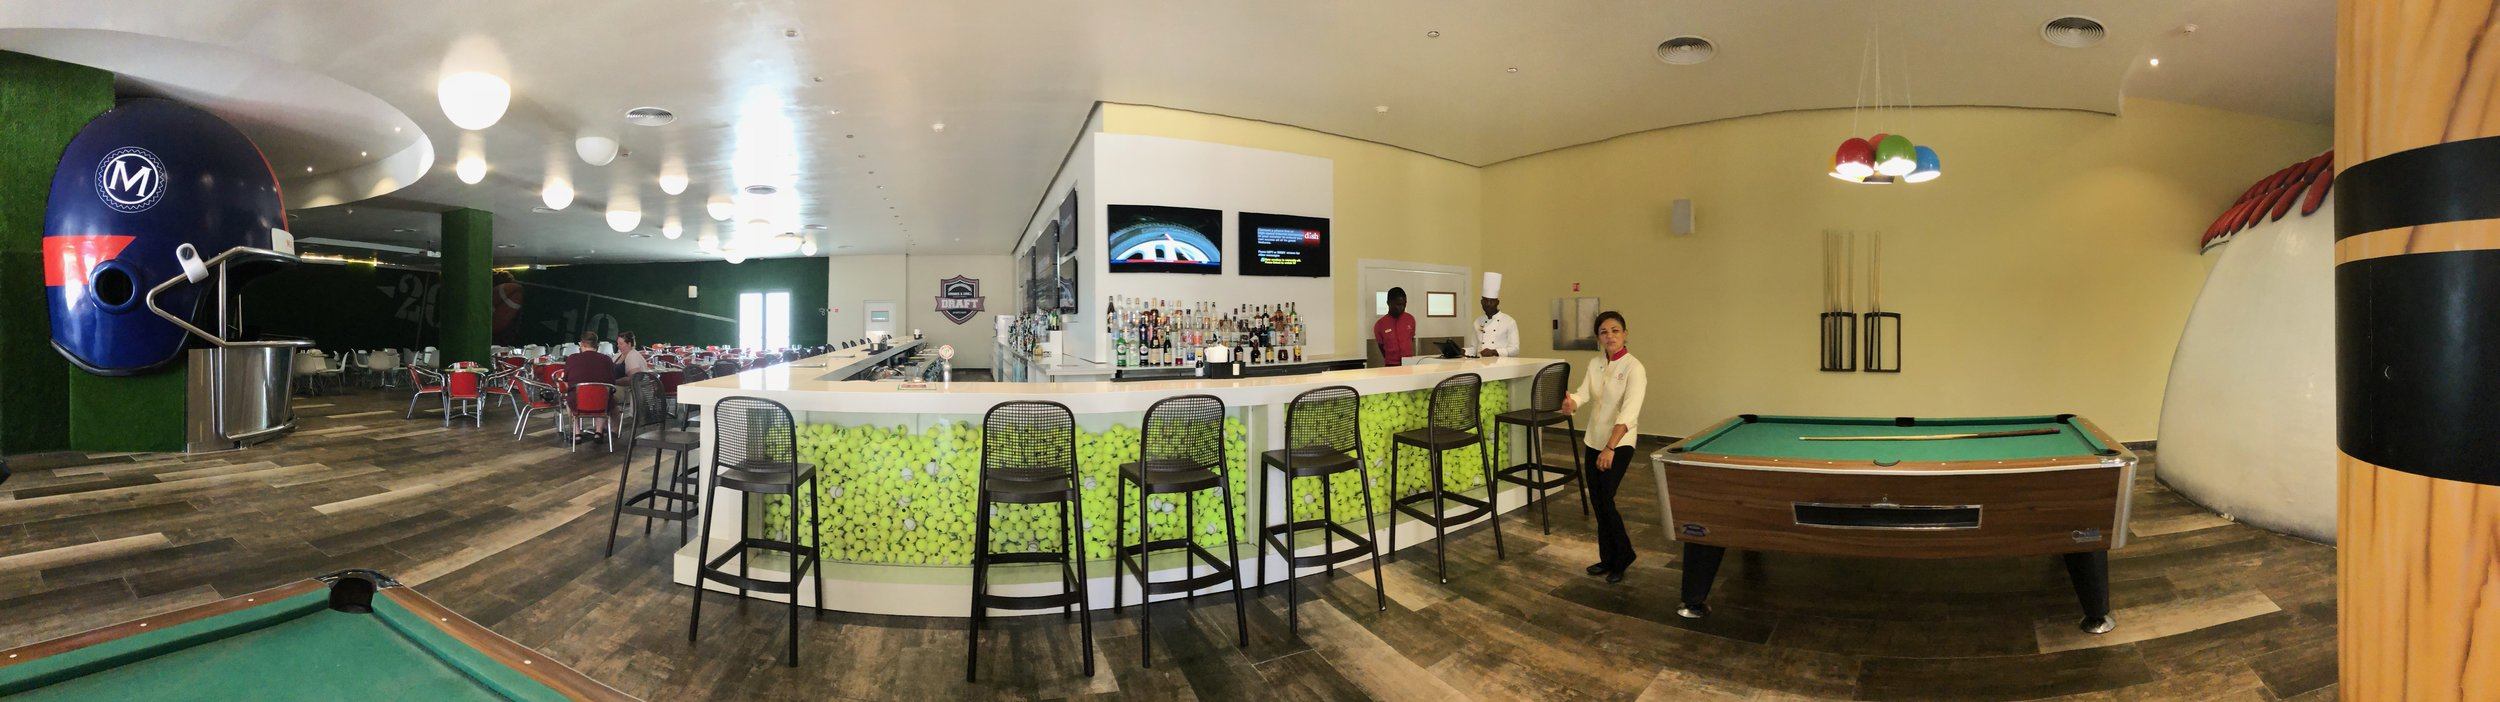 A complete view of the interior of the sports bar.